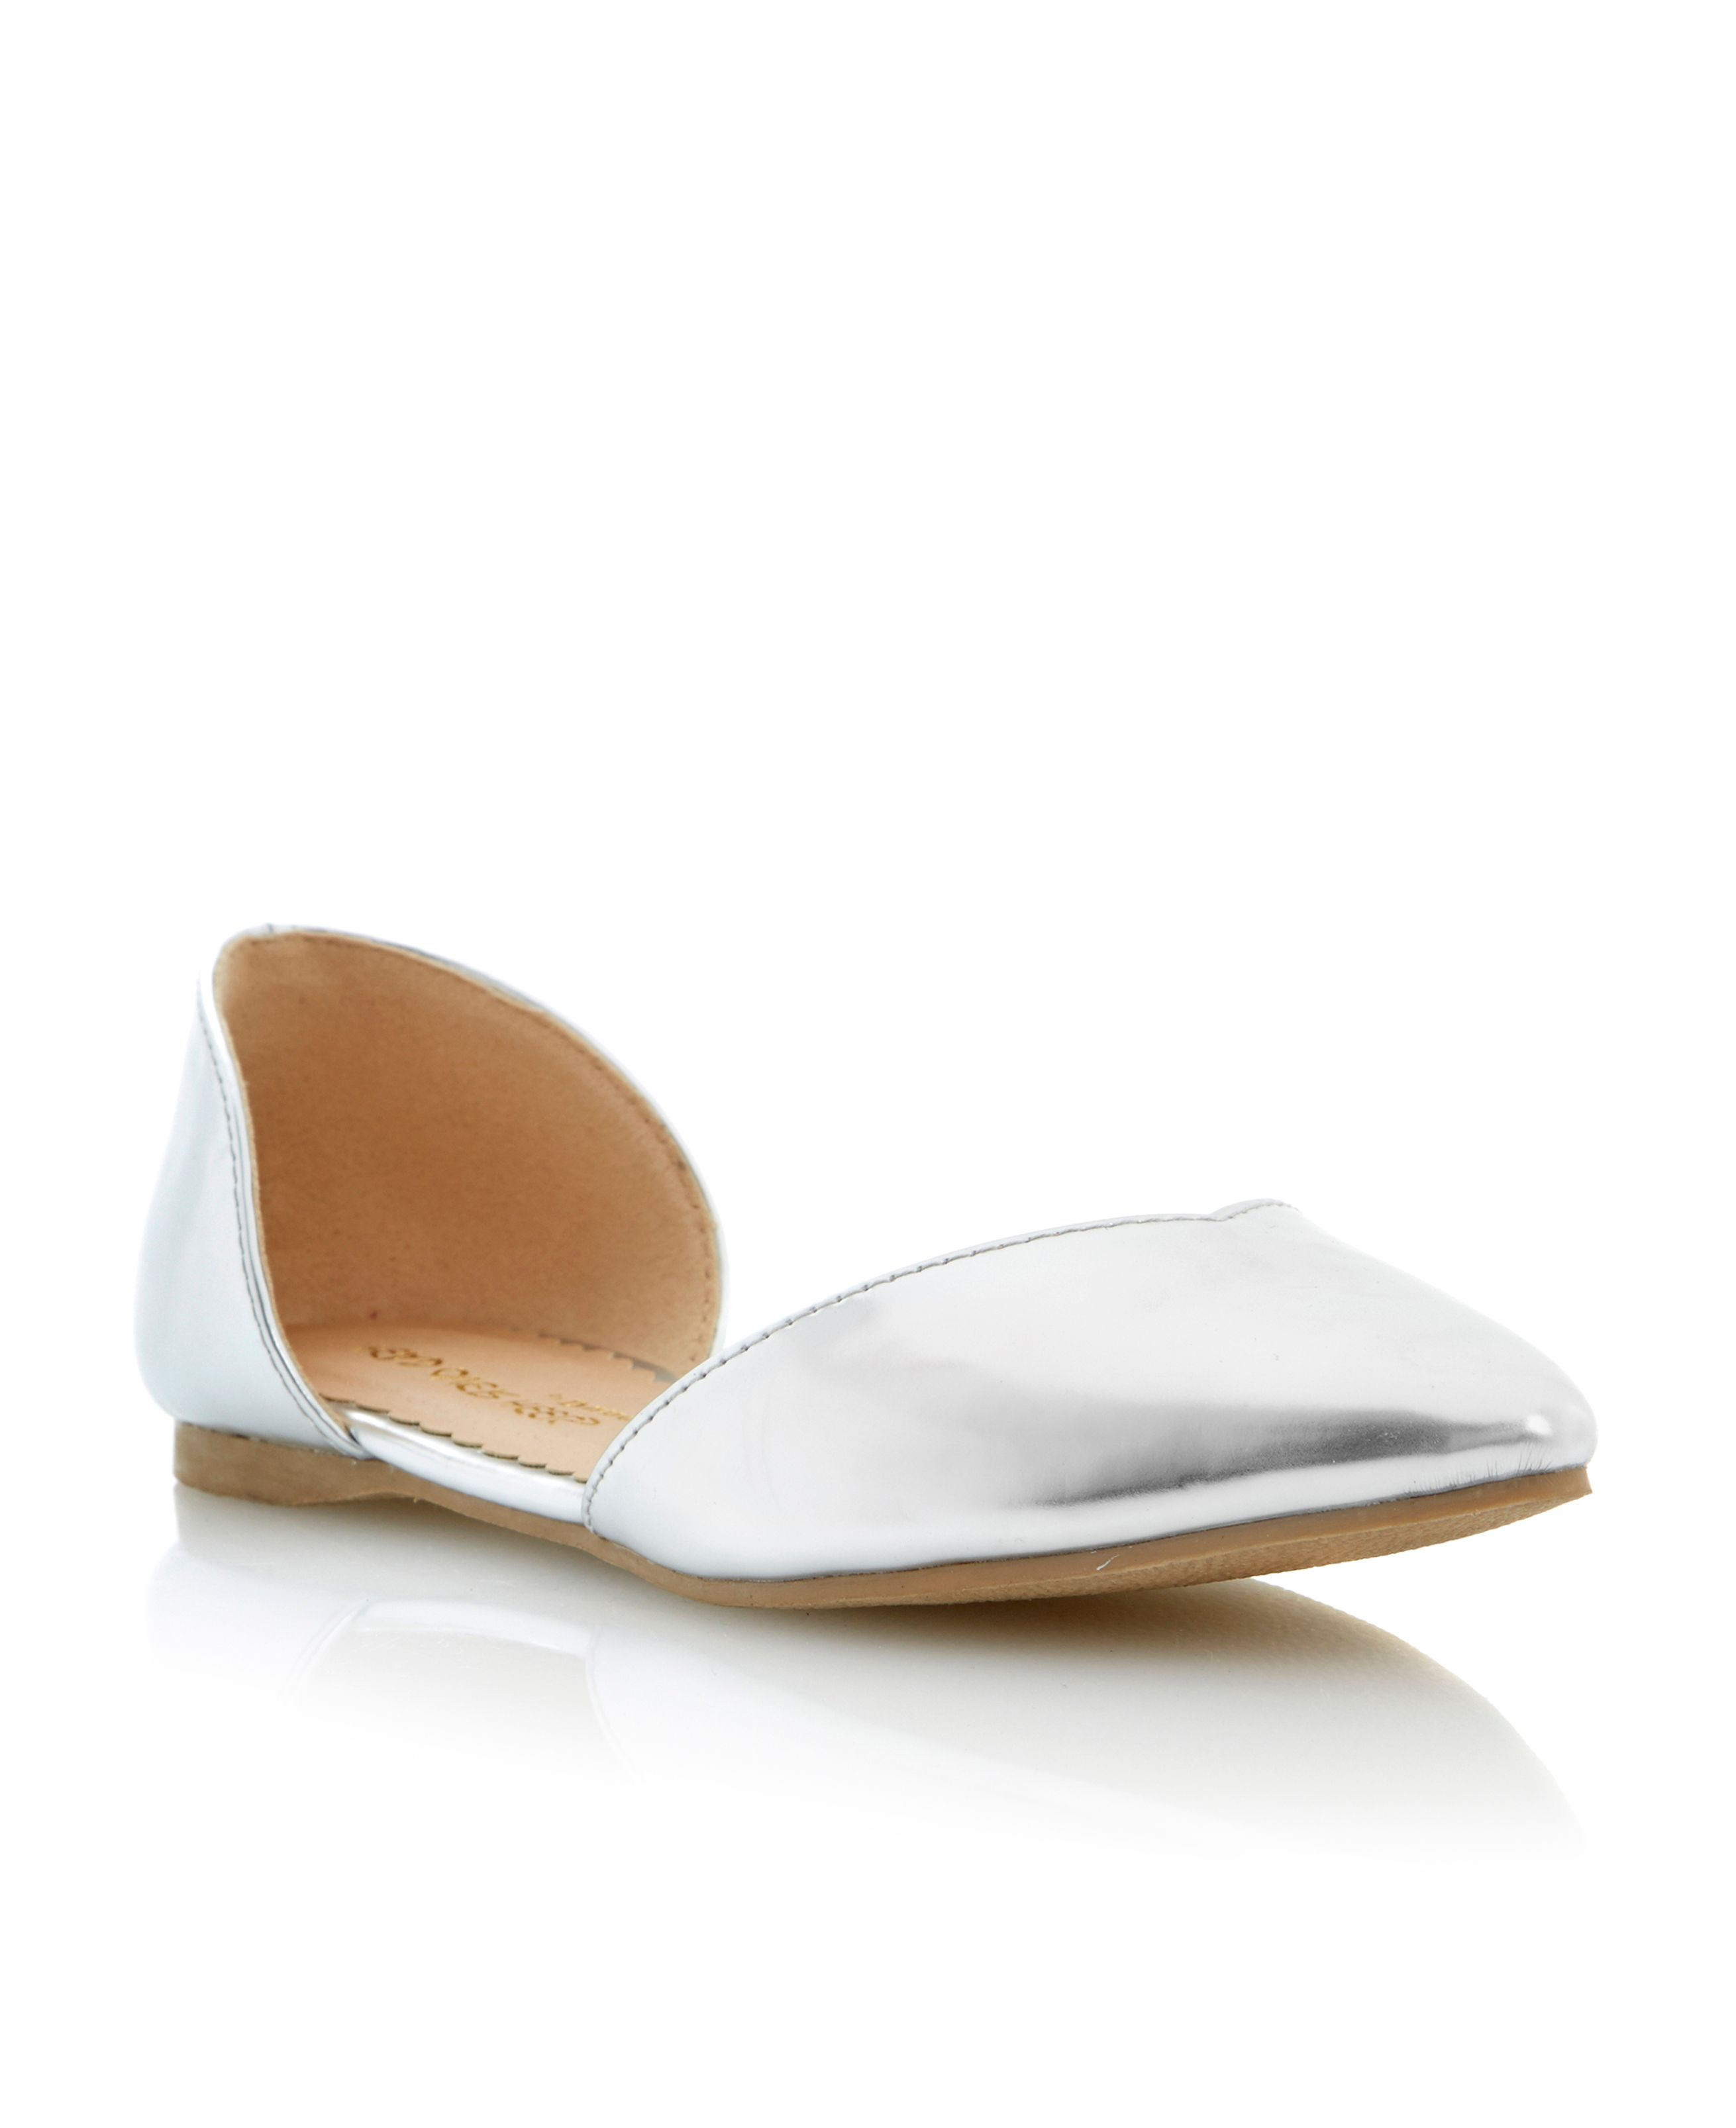 Melanee pointed toe two part flat shoes